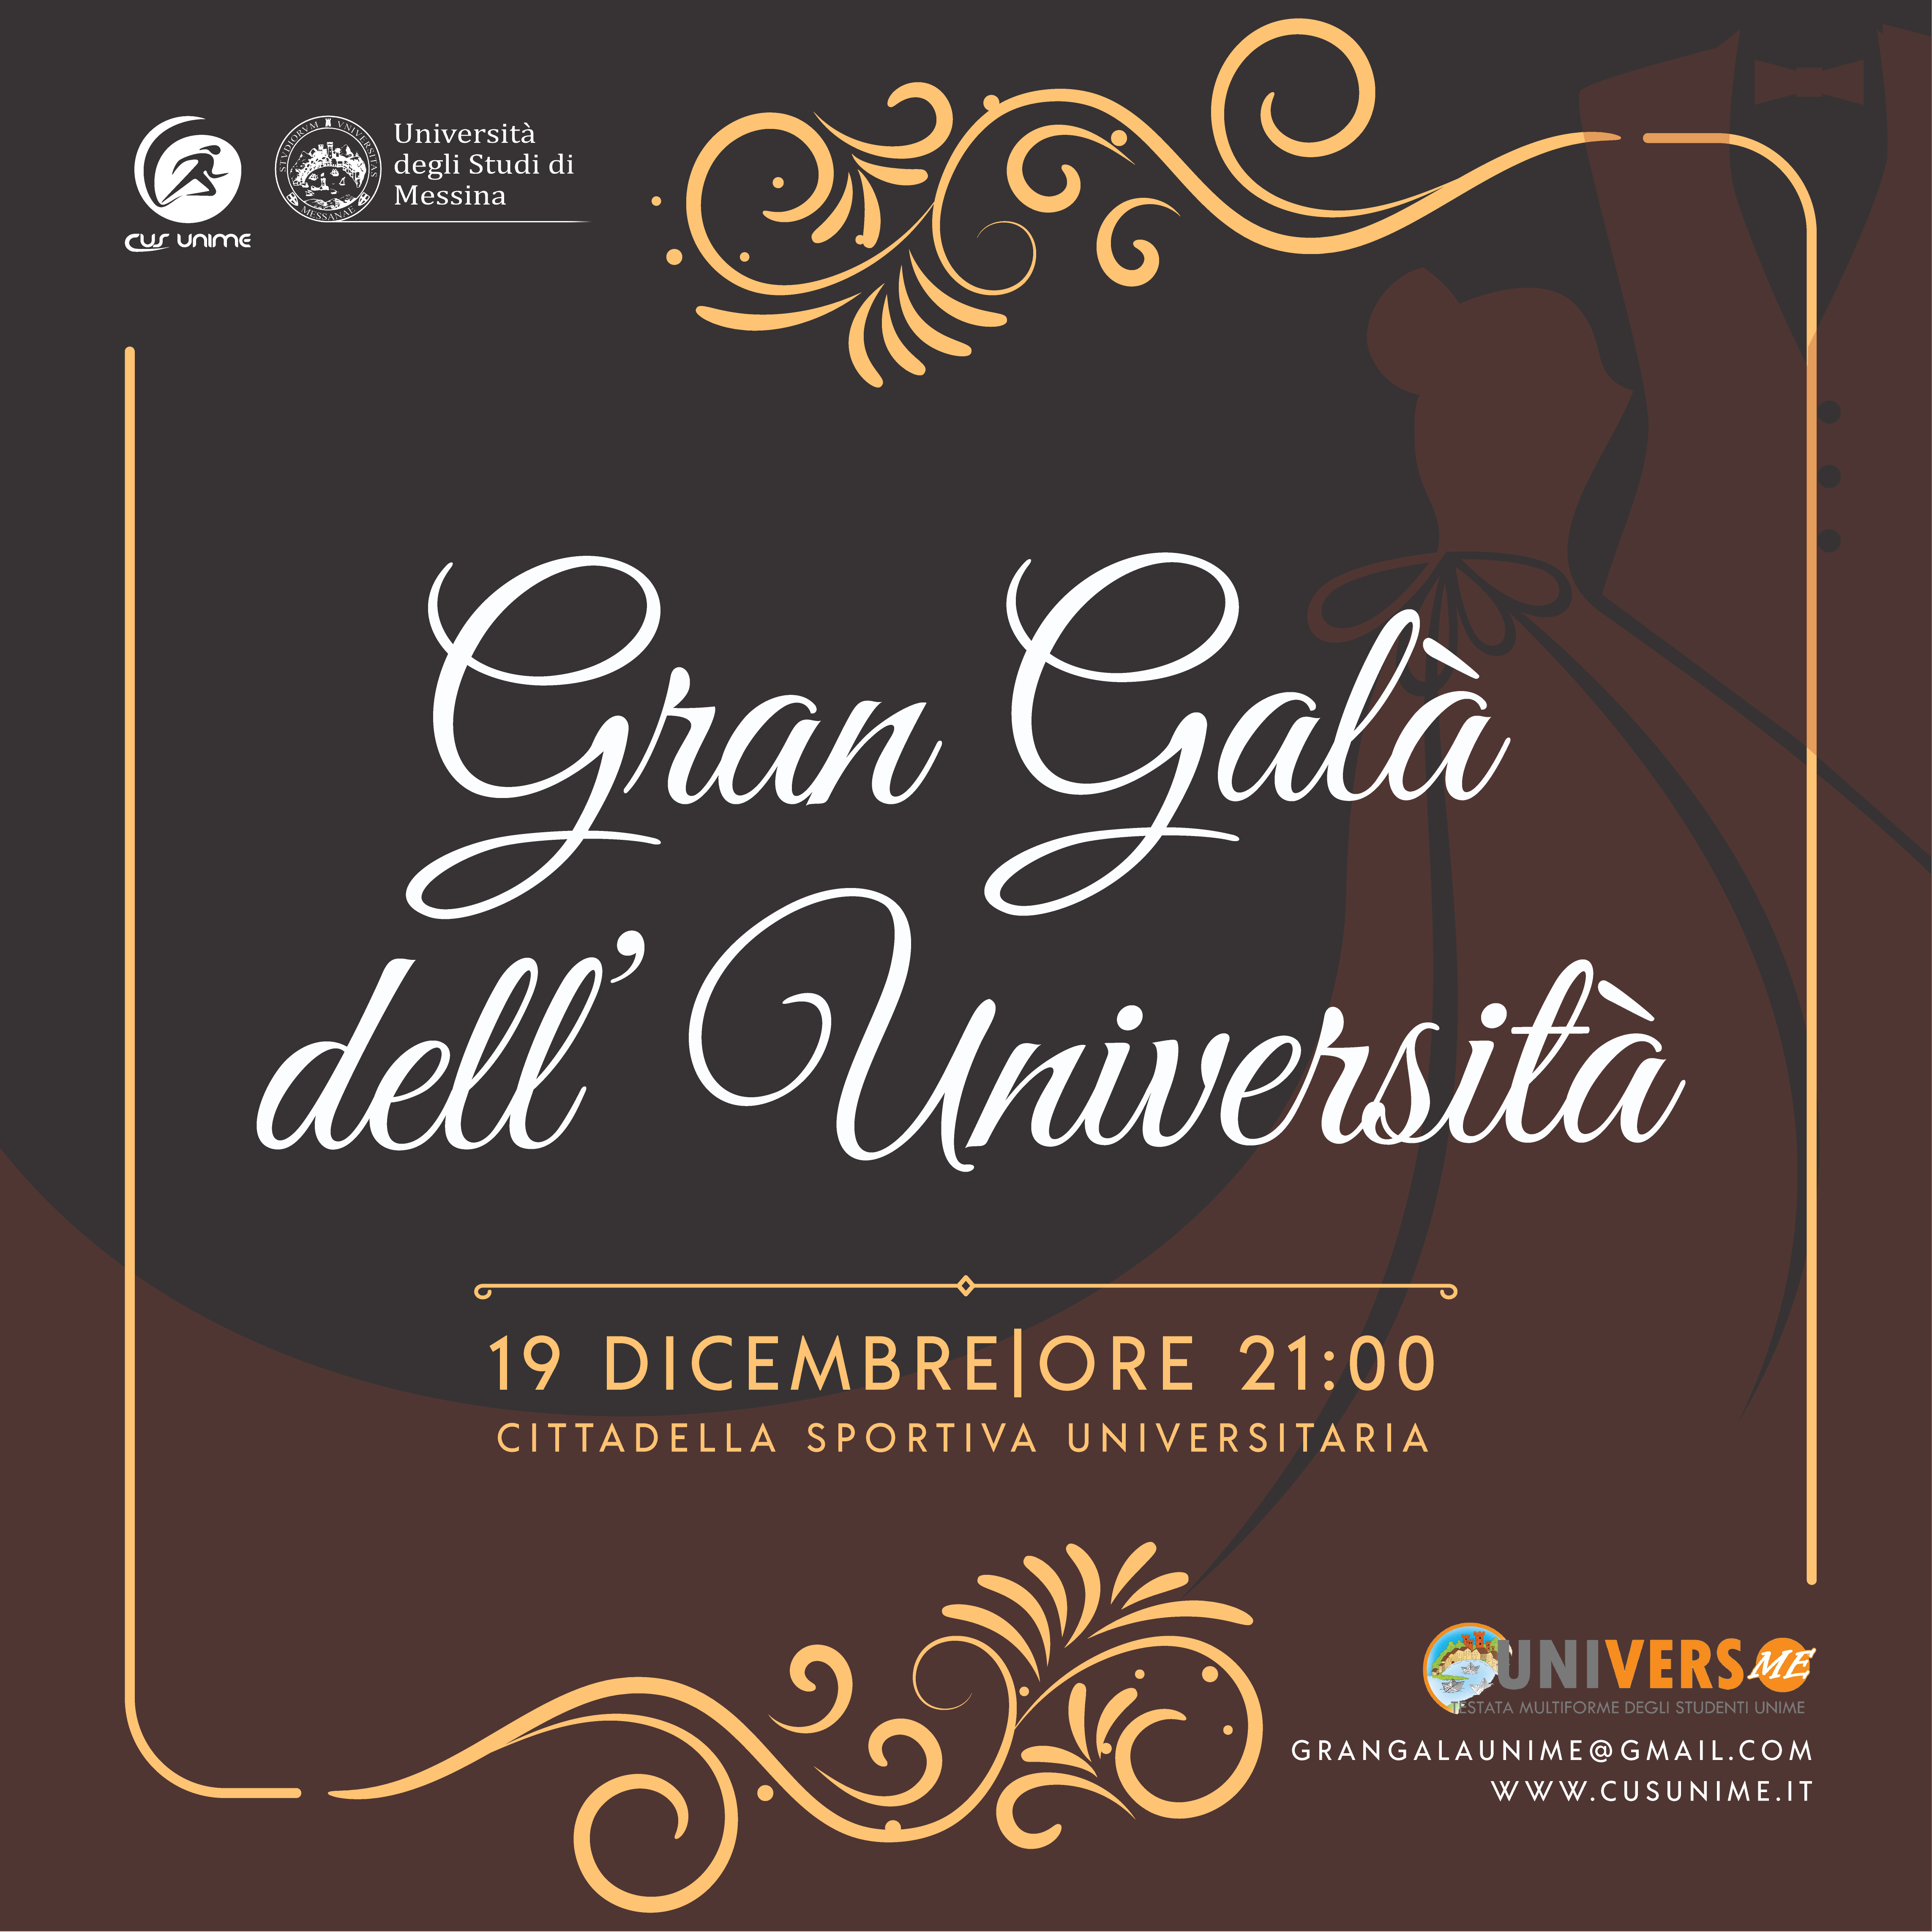 Gran Galà dell'Università